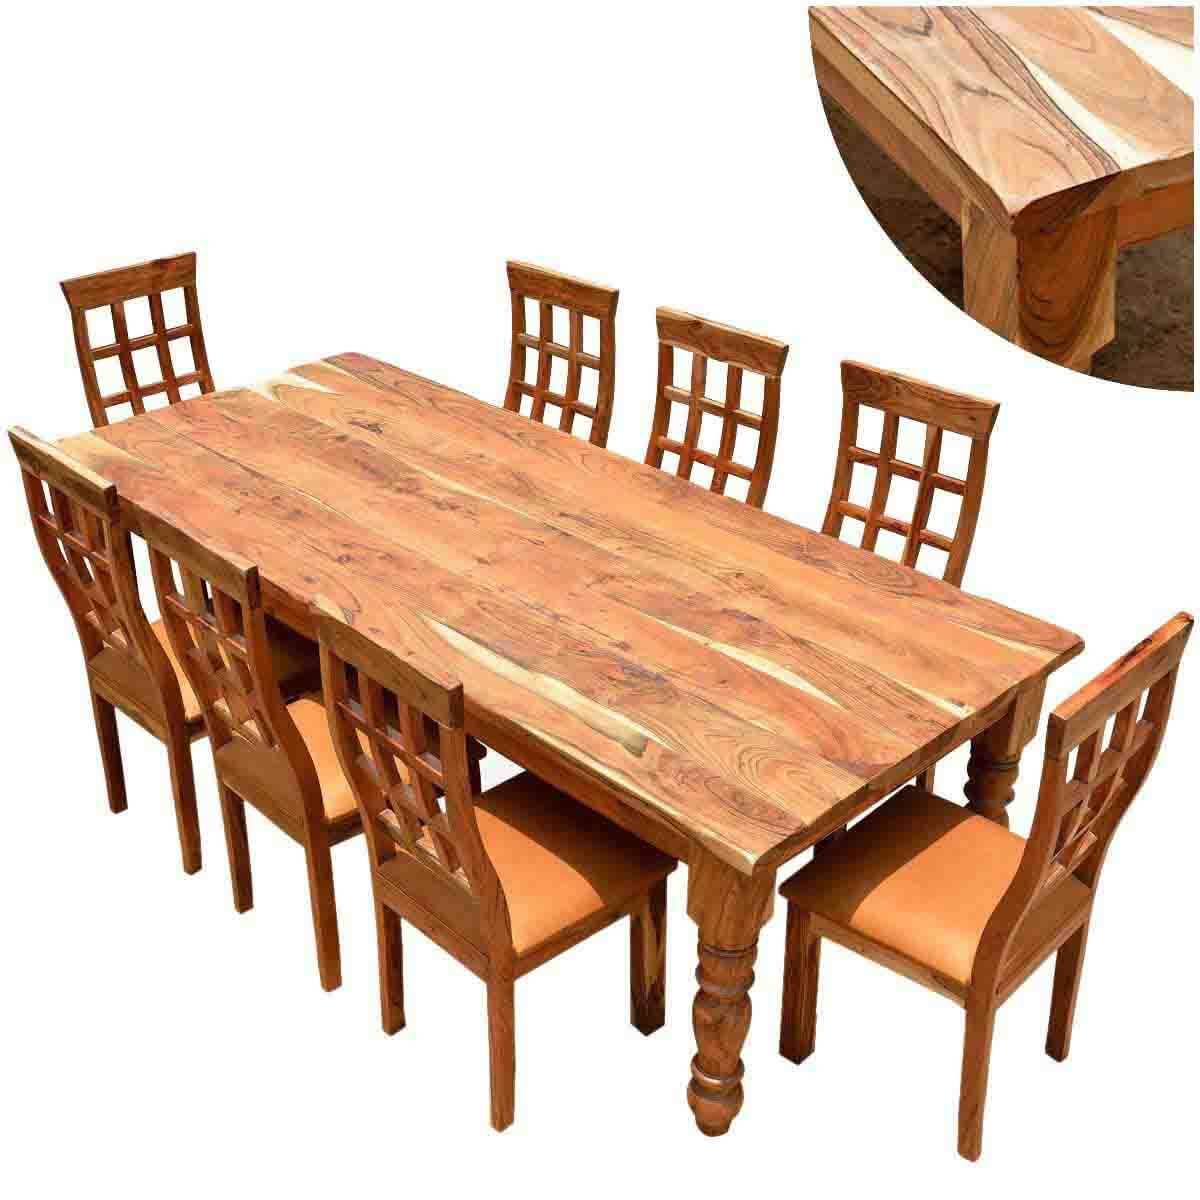 rustic-furniture-farmhouse-solid-wood-dining-table-chair-  sc 1 st  Sierra Living Concepts & Rustic Dining Table and Chair Sets | Sierra Living Concepts